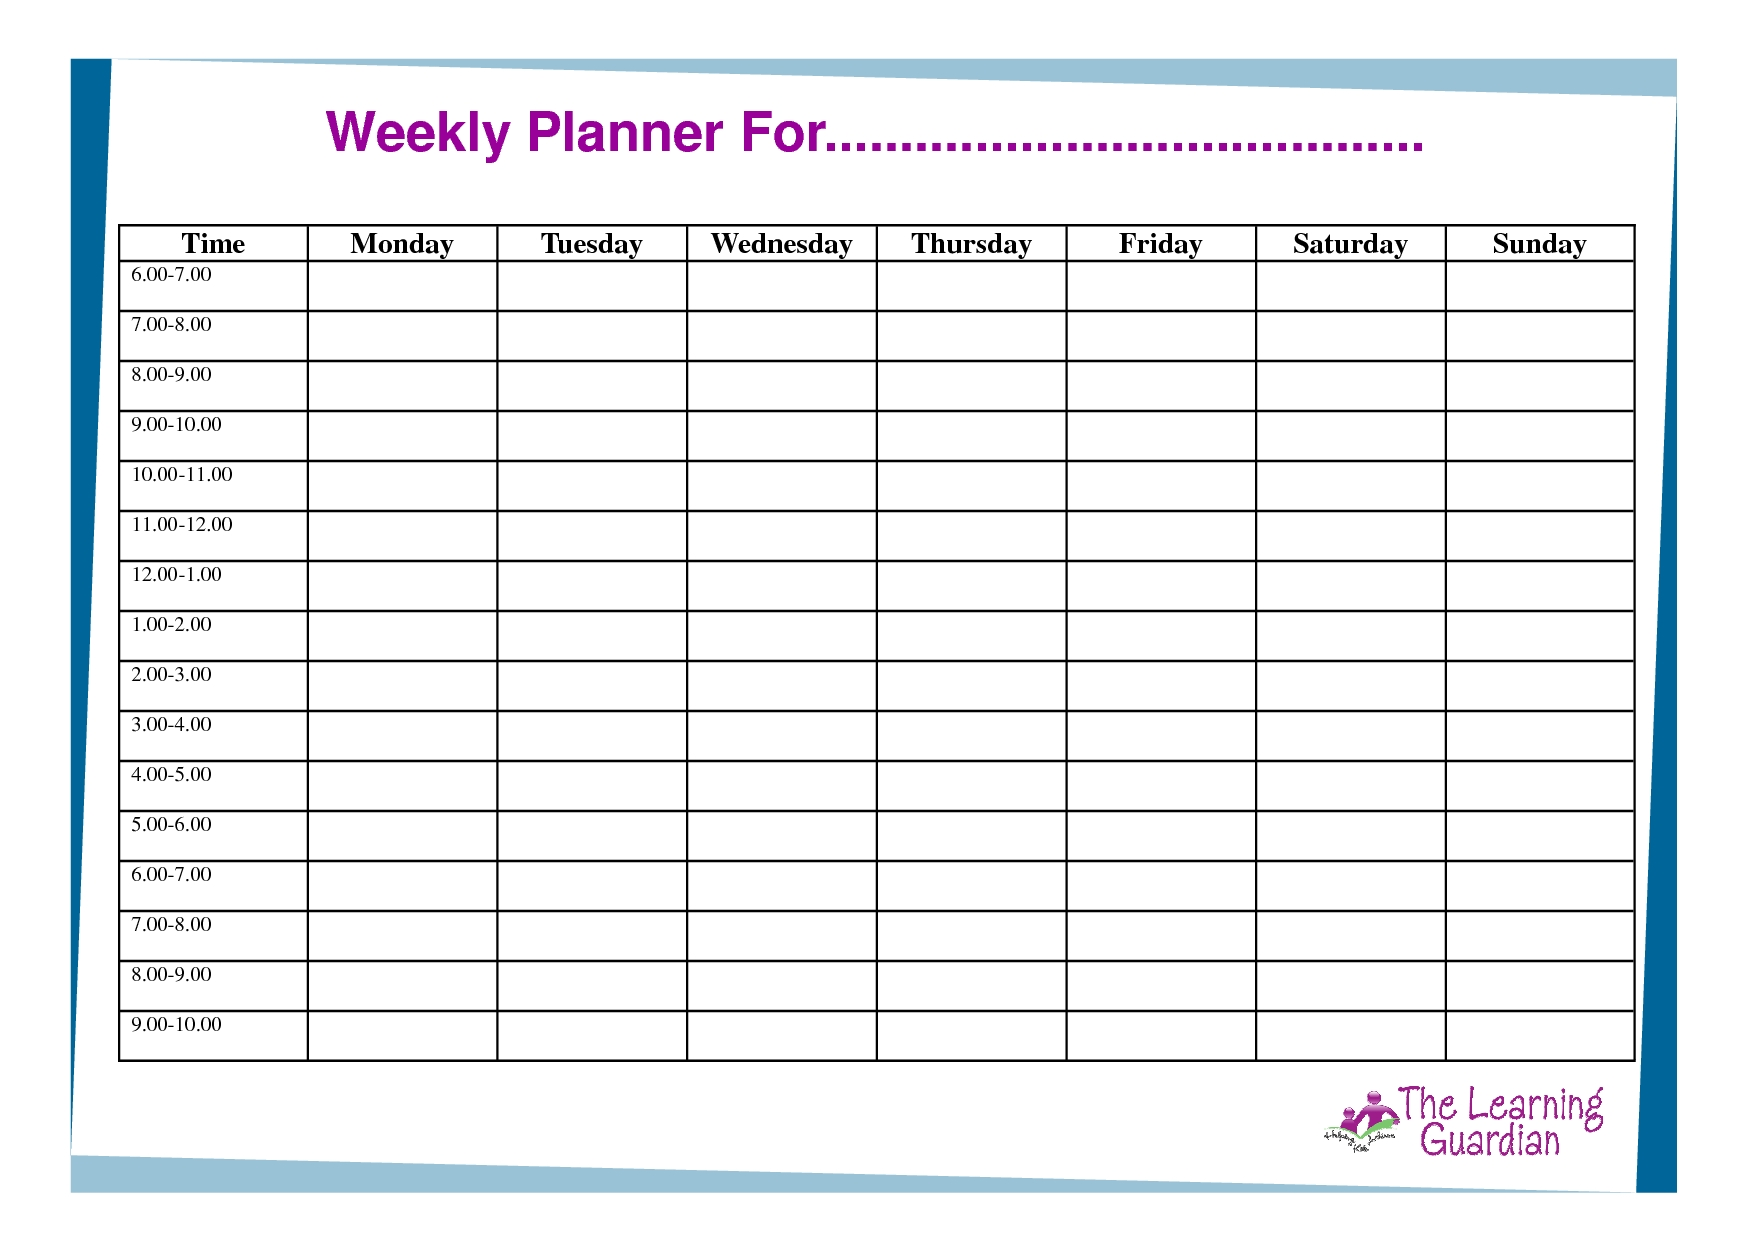 Free+Printable+Weekly+Planner+Templates In 2020 | Weekly